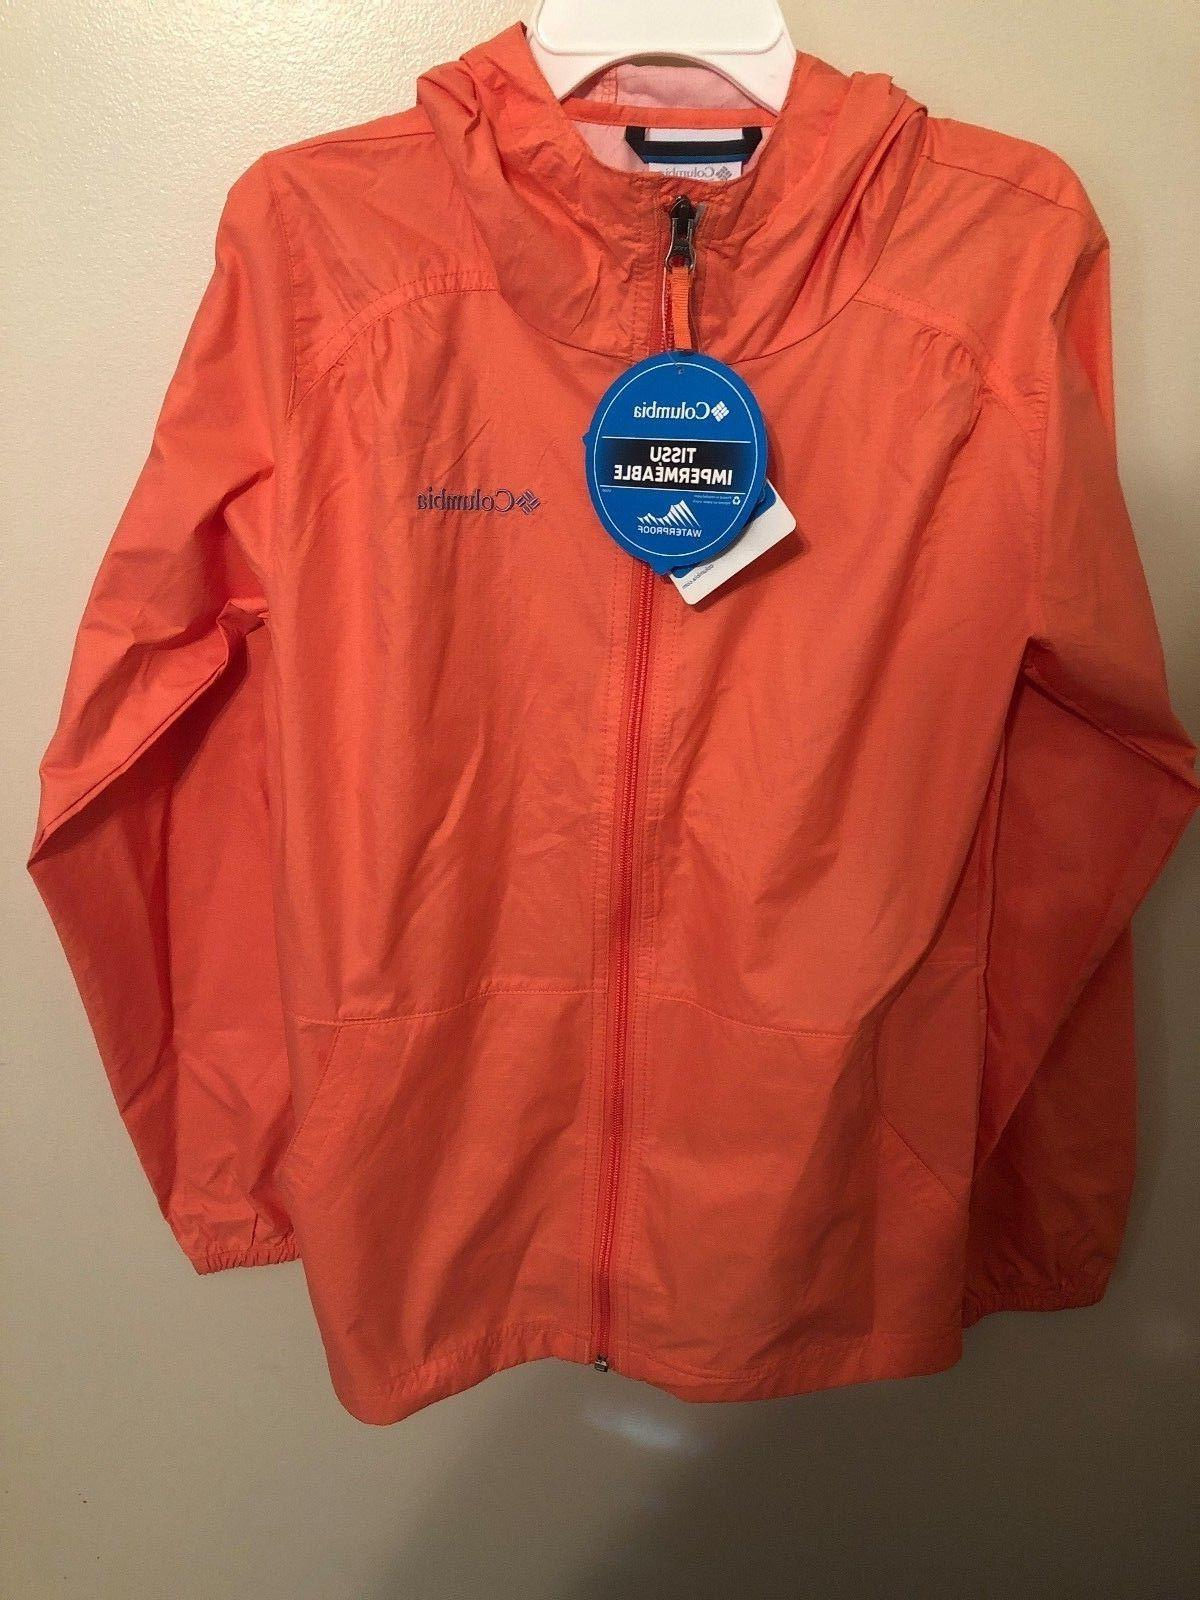 nwts youth and toddler peach rain jacket